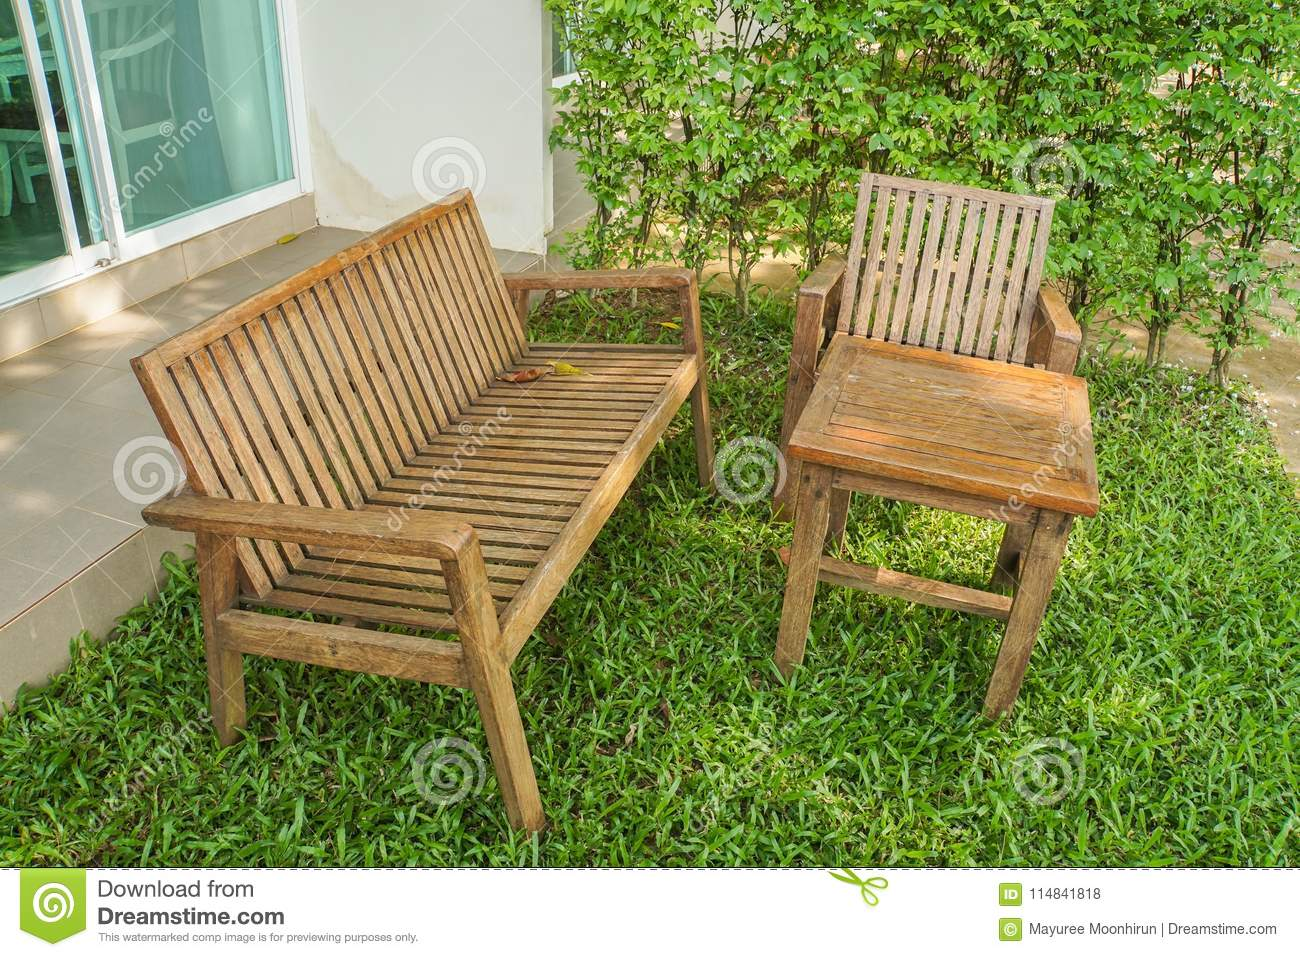 Super Wooden Bench And Chair On Green Lawn For Sitting Stock Photo Ocoug Best Dining Table And Chair Ideas Images Ocougorg